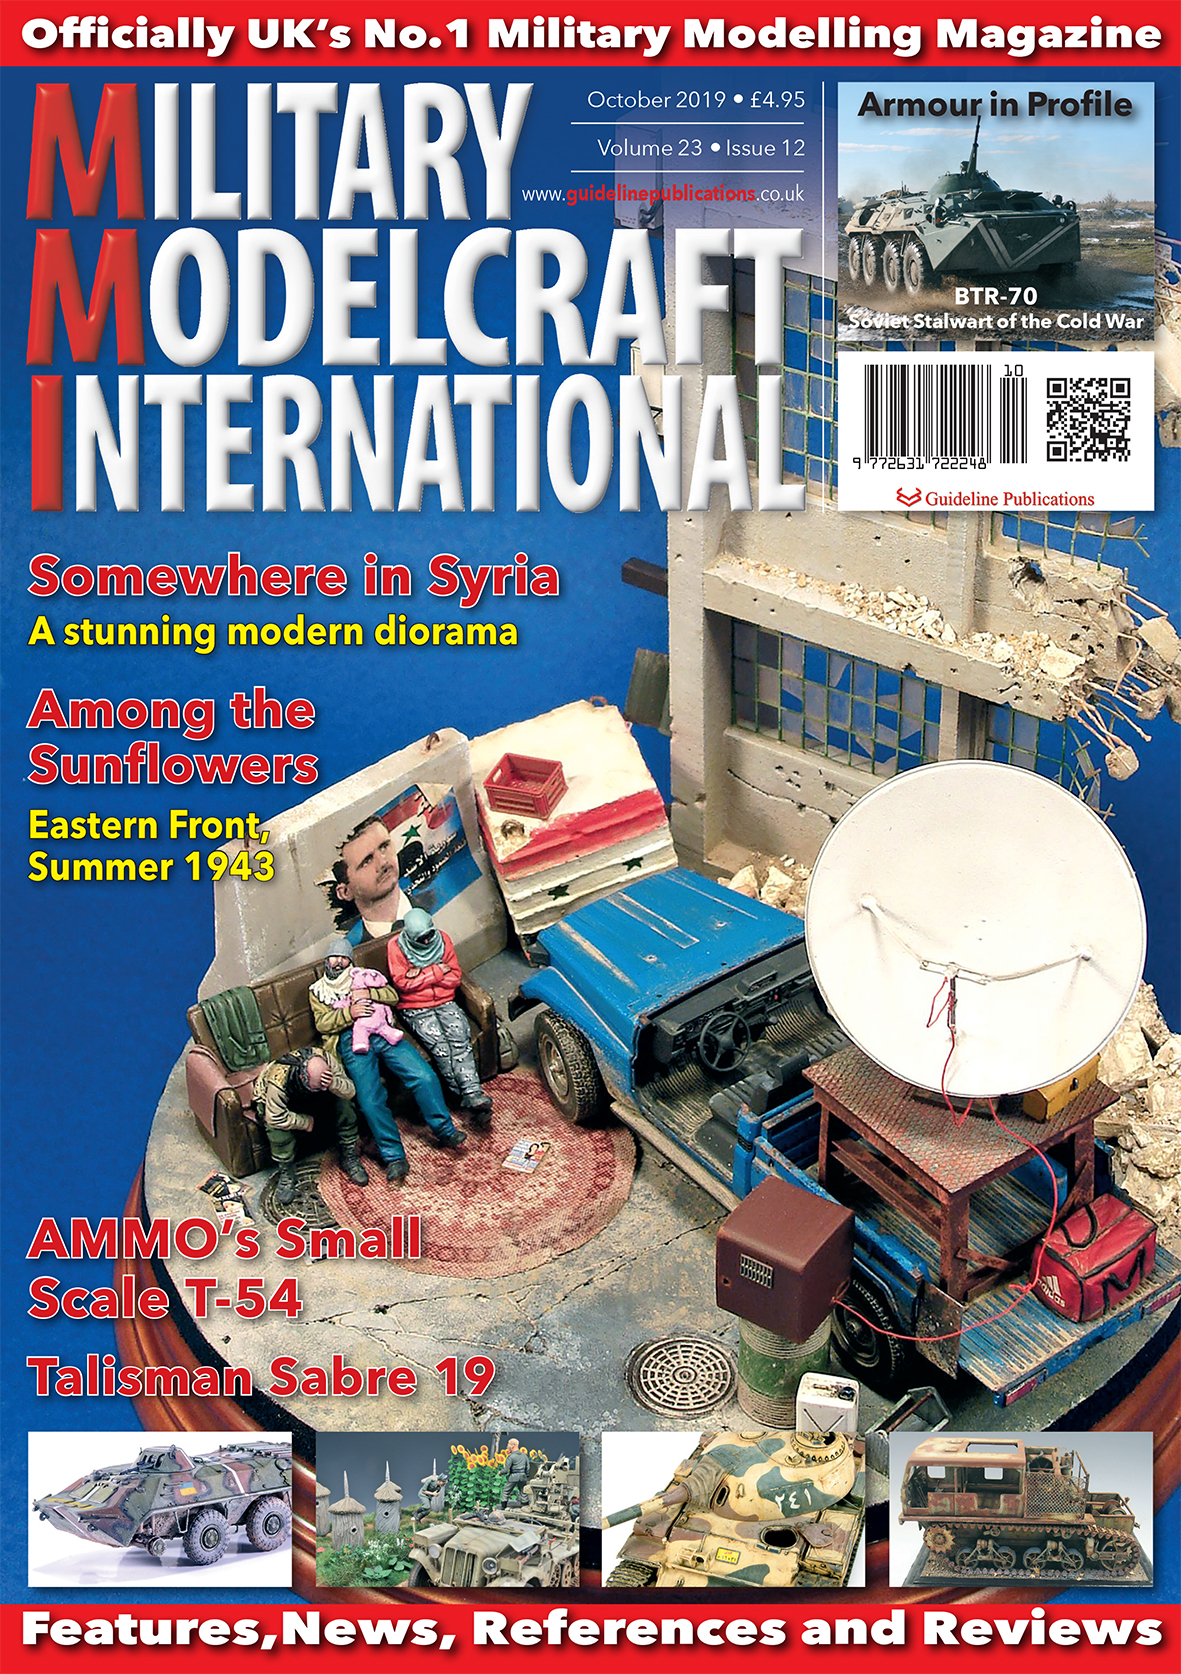 Guideline Publications Military Modelcraft Int Oct 2019 vol 23-12 - October  2019